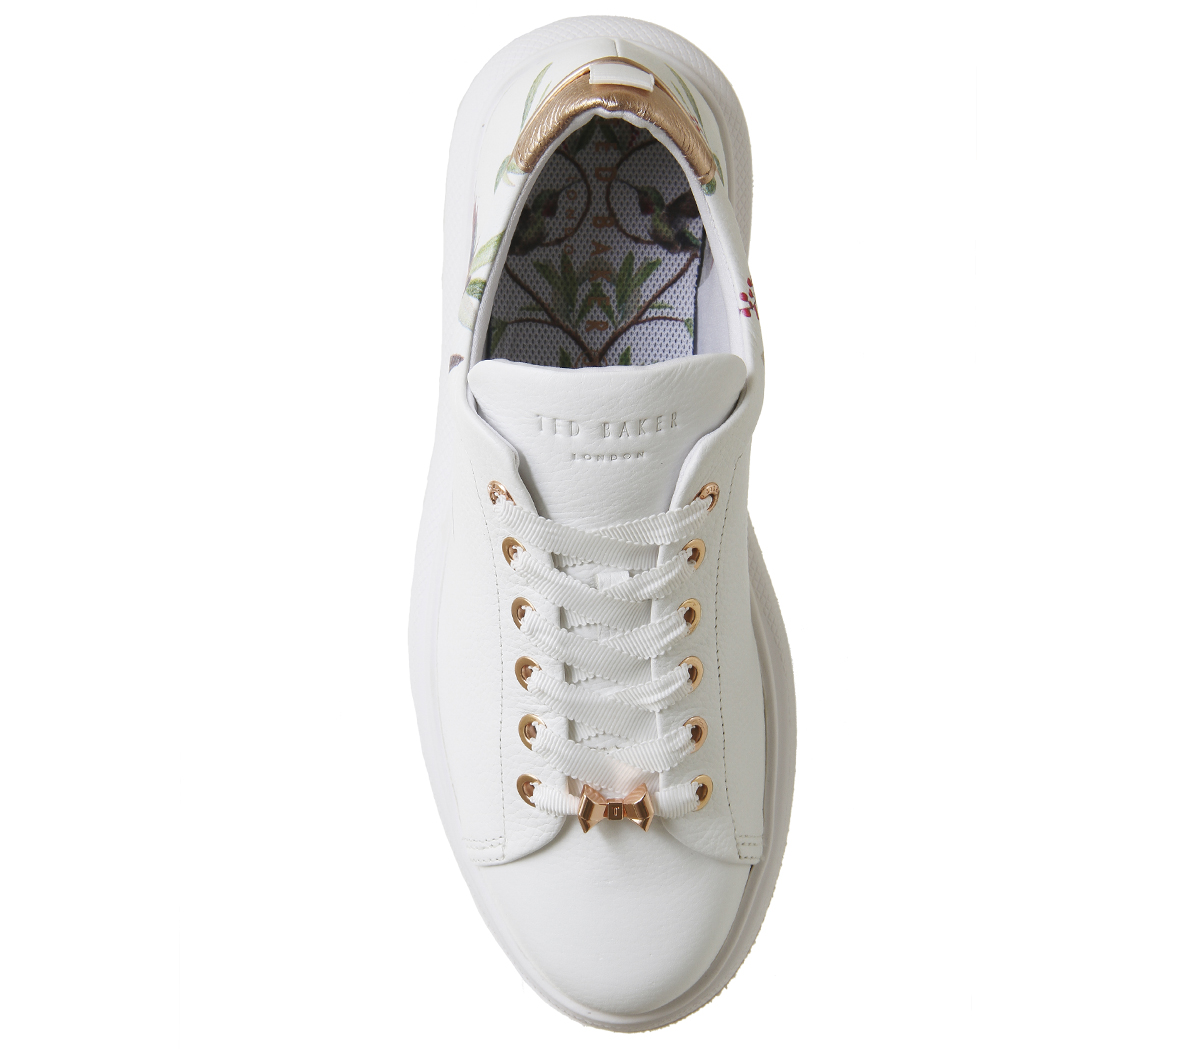 Chaussures femme Ted Ted Ted Baker PHOTO içi Baskets Highgrove Hummingbird Baskets Chaussures b6db47